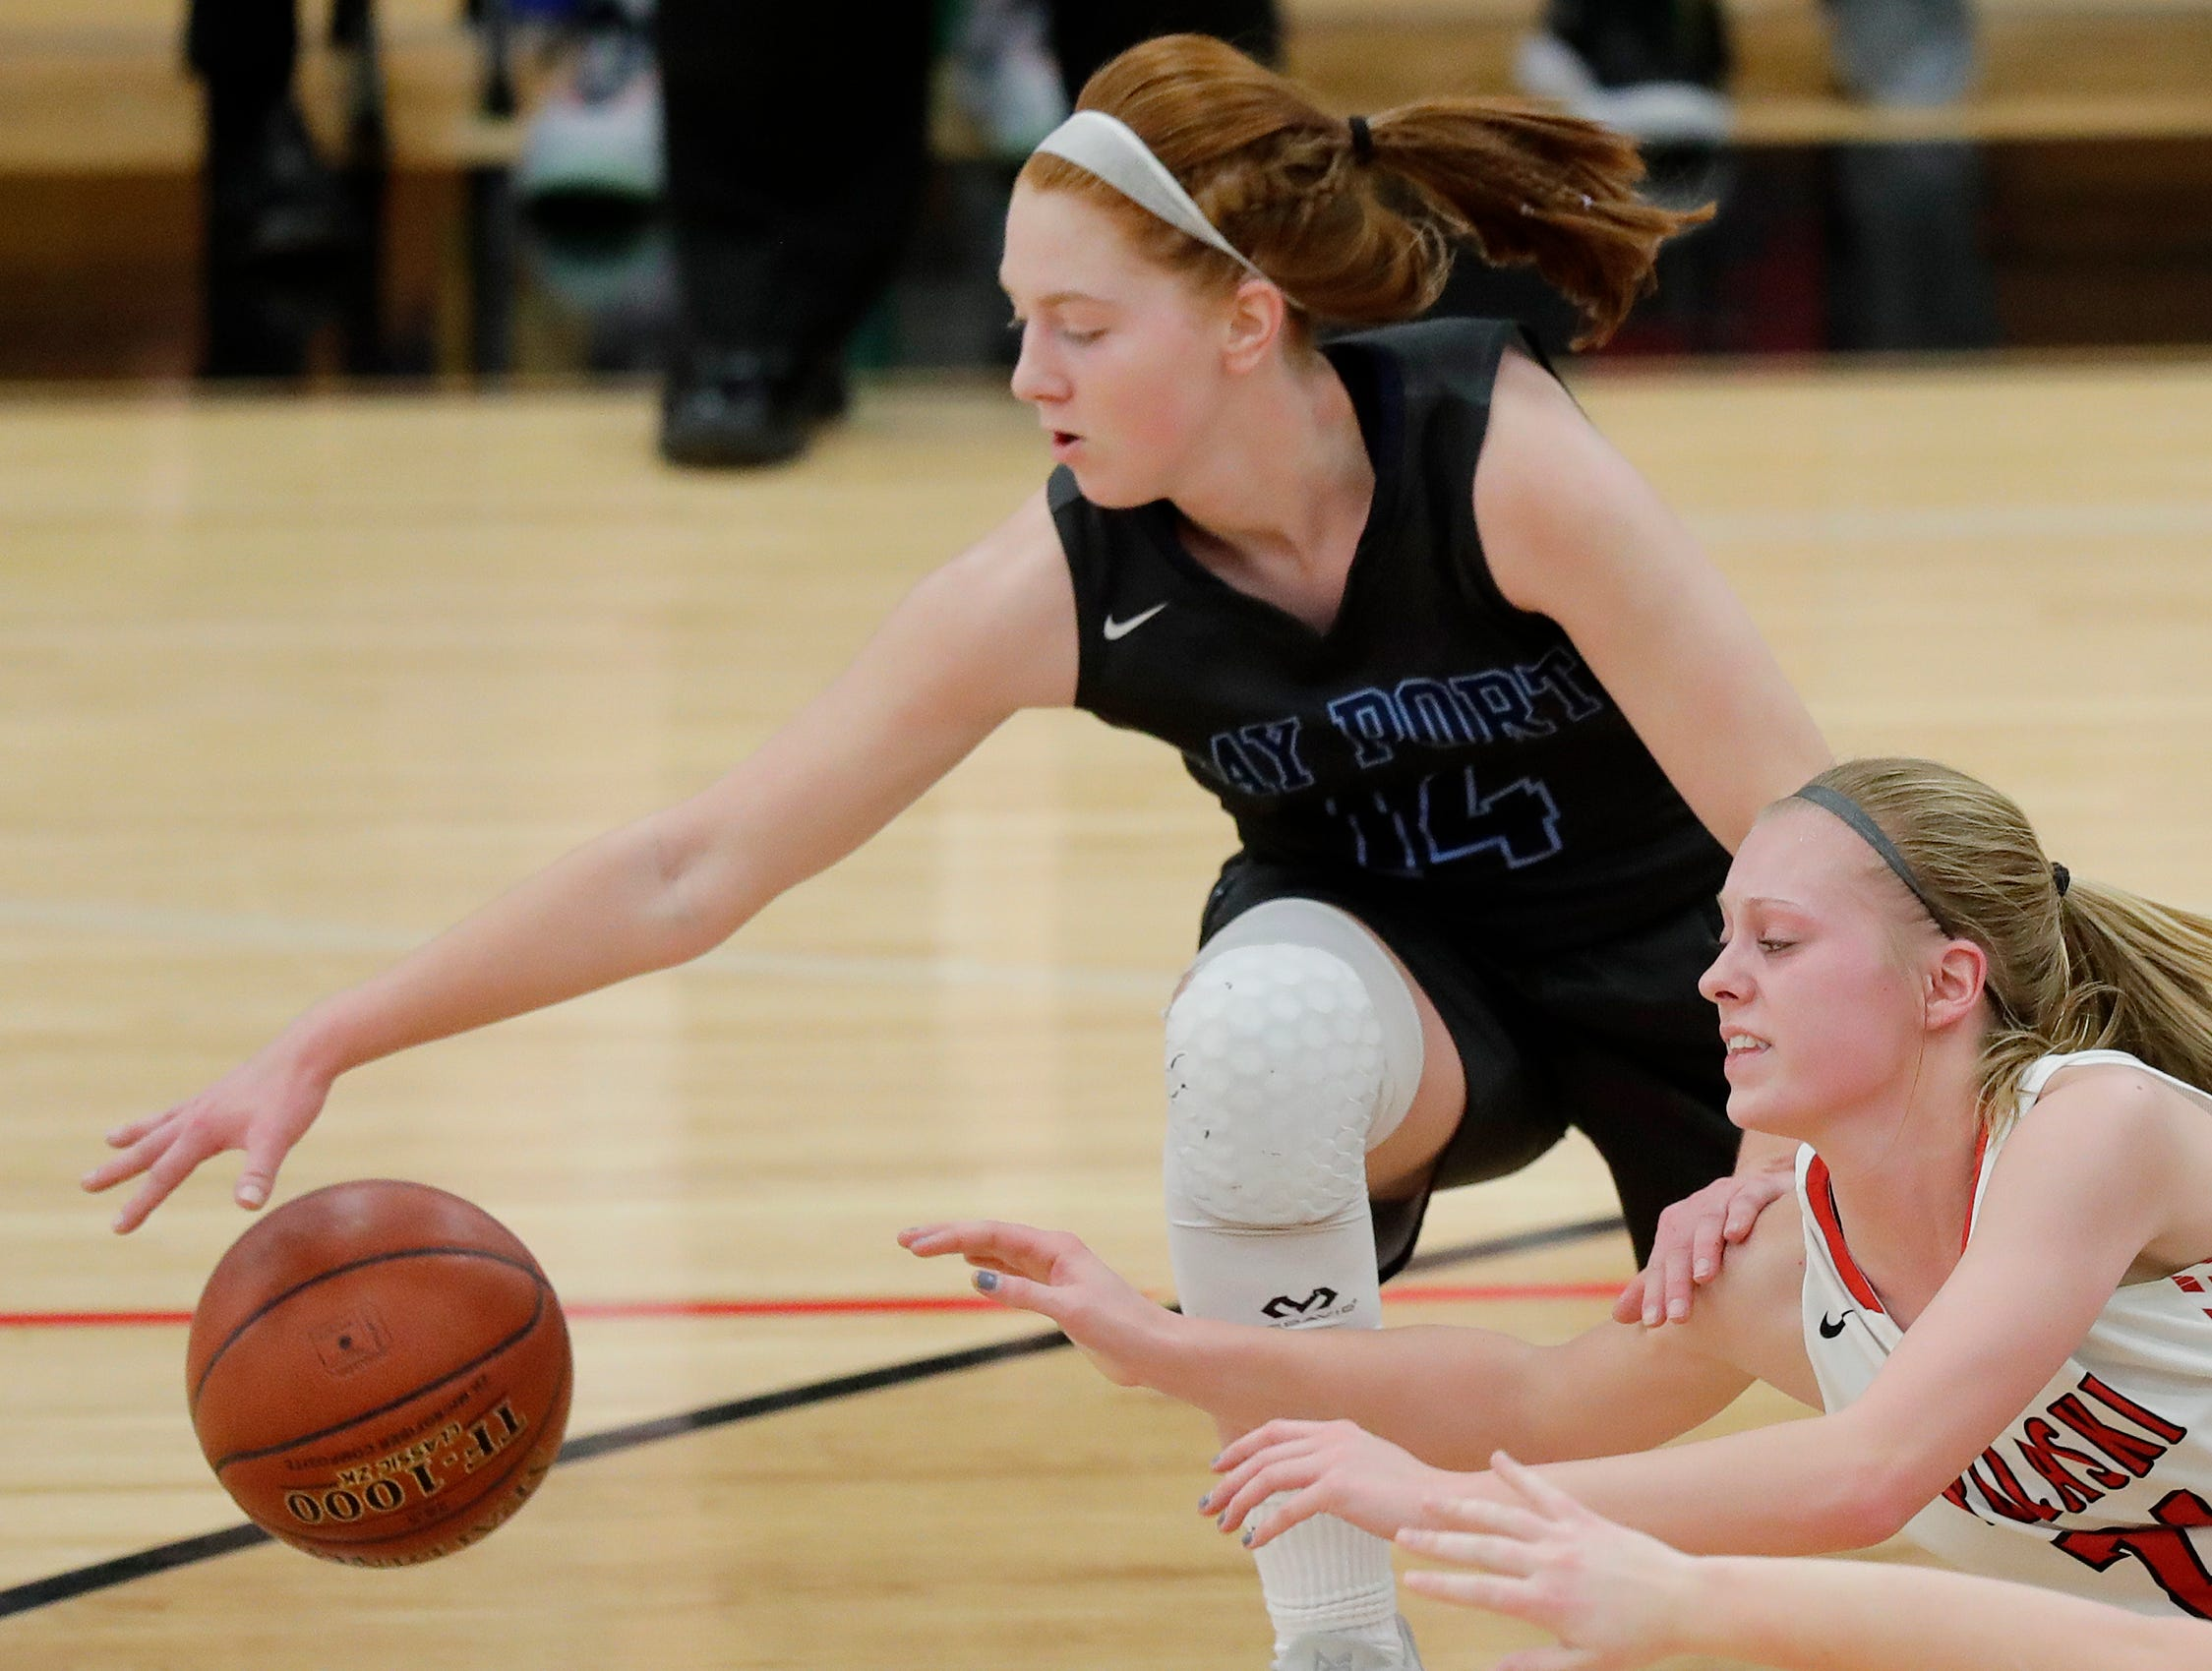 Bay Port's Alaina Abel (14) gets to a loose ball ahead of Pulaski's Chelsey Gilson (24) in a girls basketball game at Pulaski high school on Friday, January 4, 2019 in Pulaski, Wis.